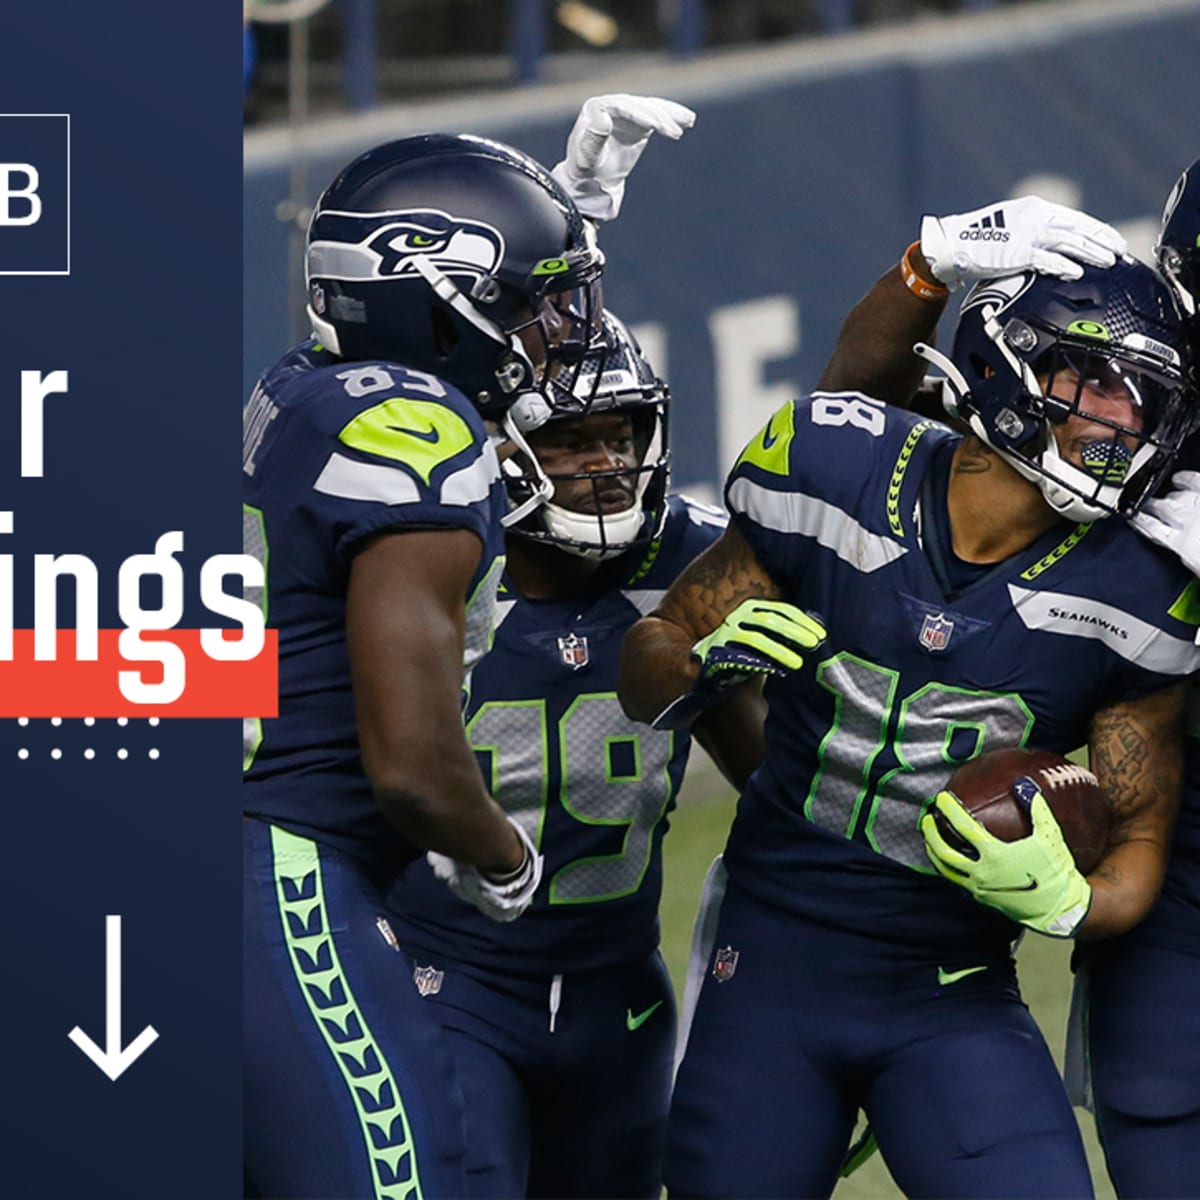 Betting line seahawks panthers meme localbitcoins sell western union